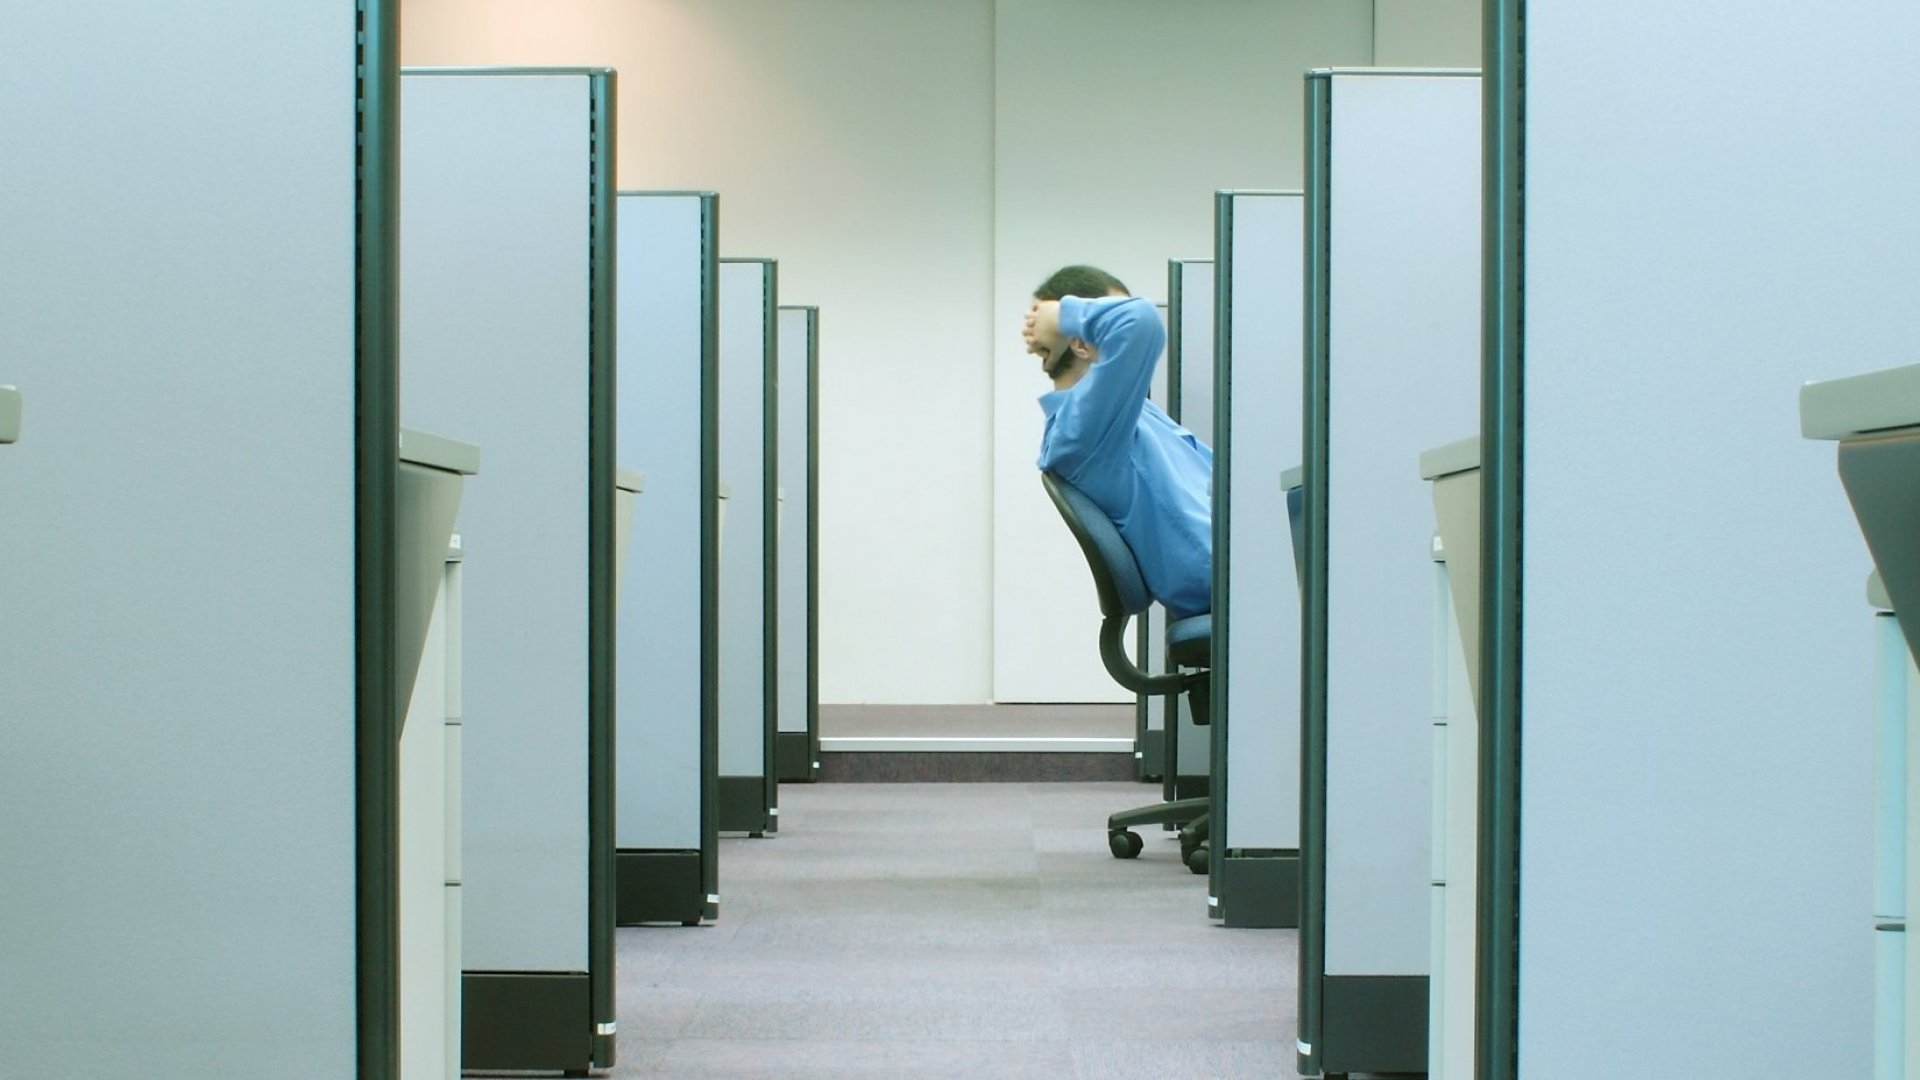 7 Ways Being a Hard Worker Could Make You Hard to Tolerate